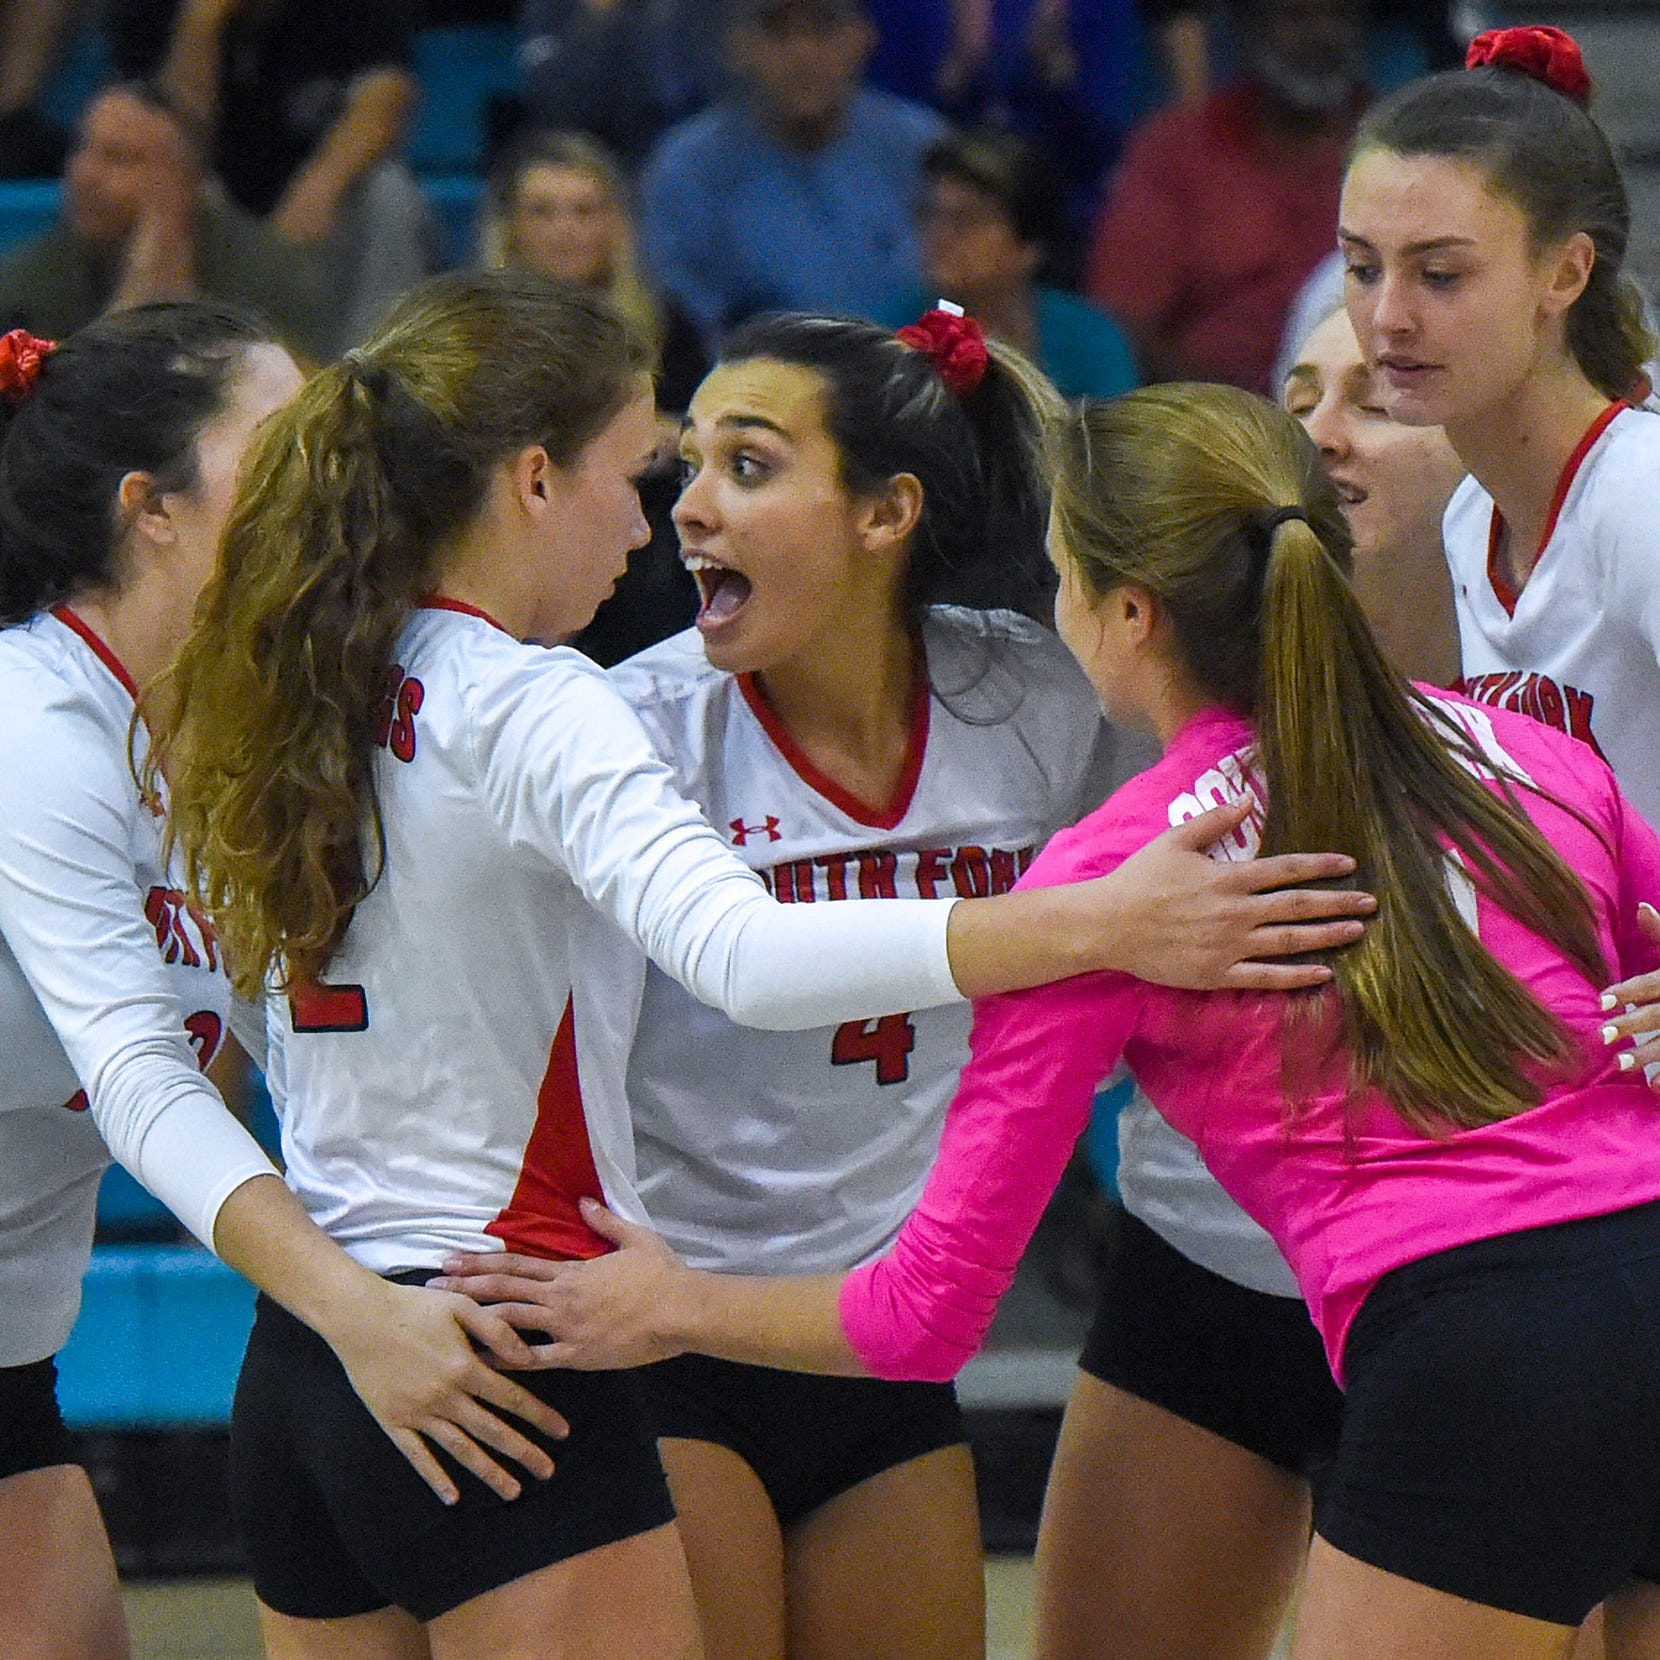 Trip to state at stake for Fort Pierce Central, South Fork volleyball teams